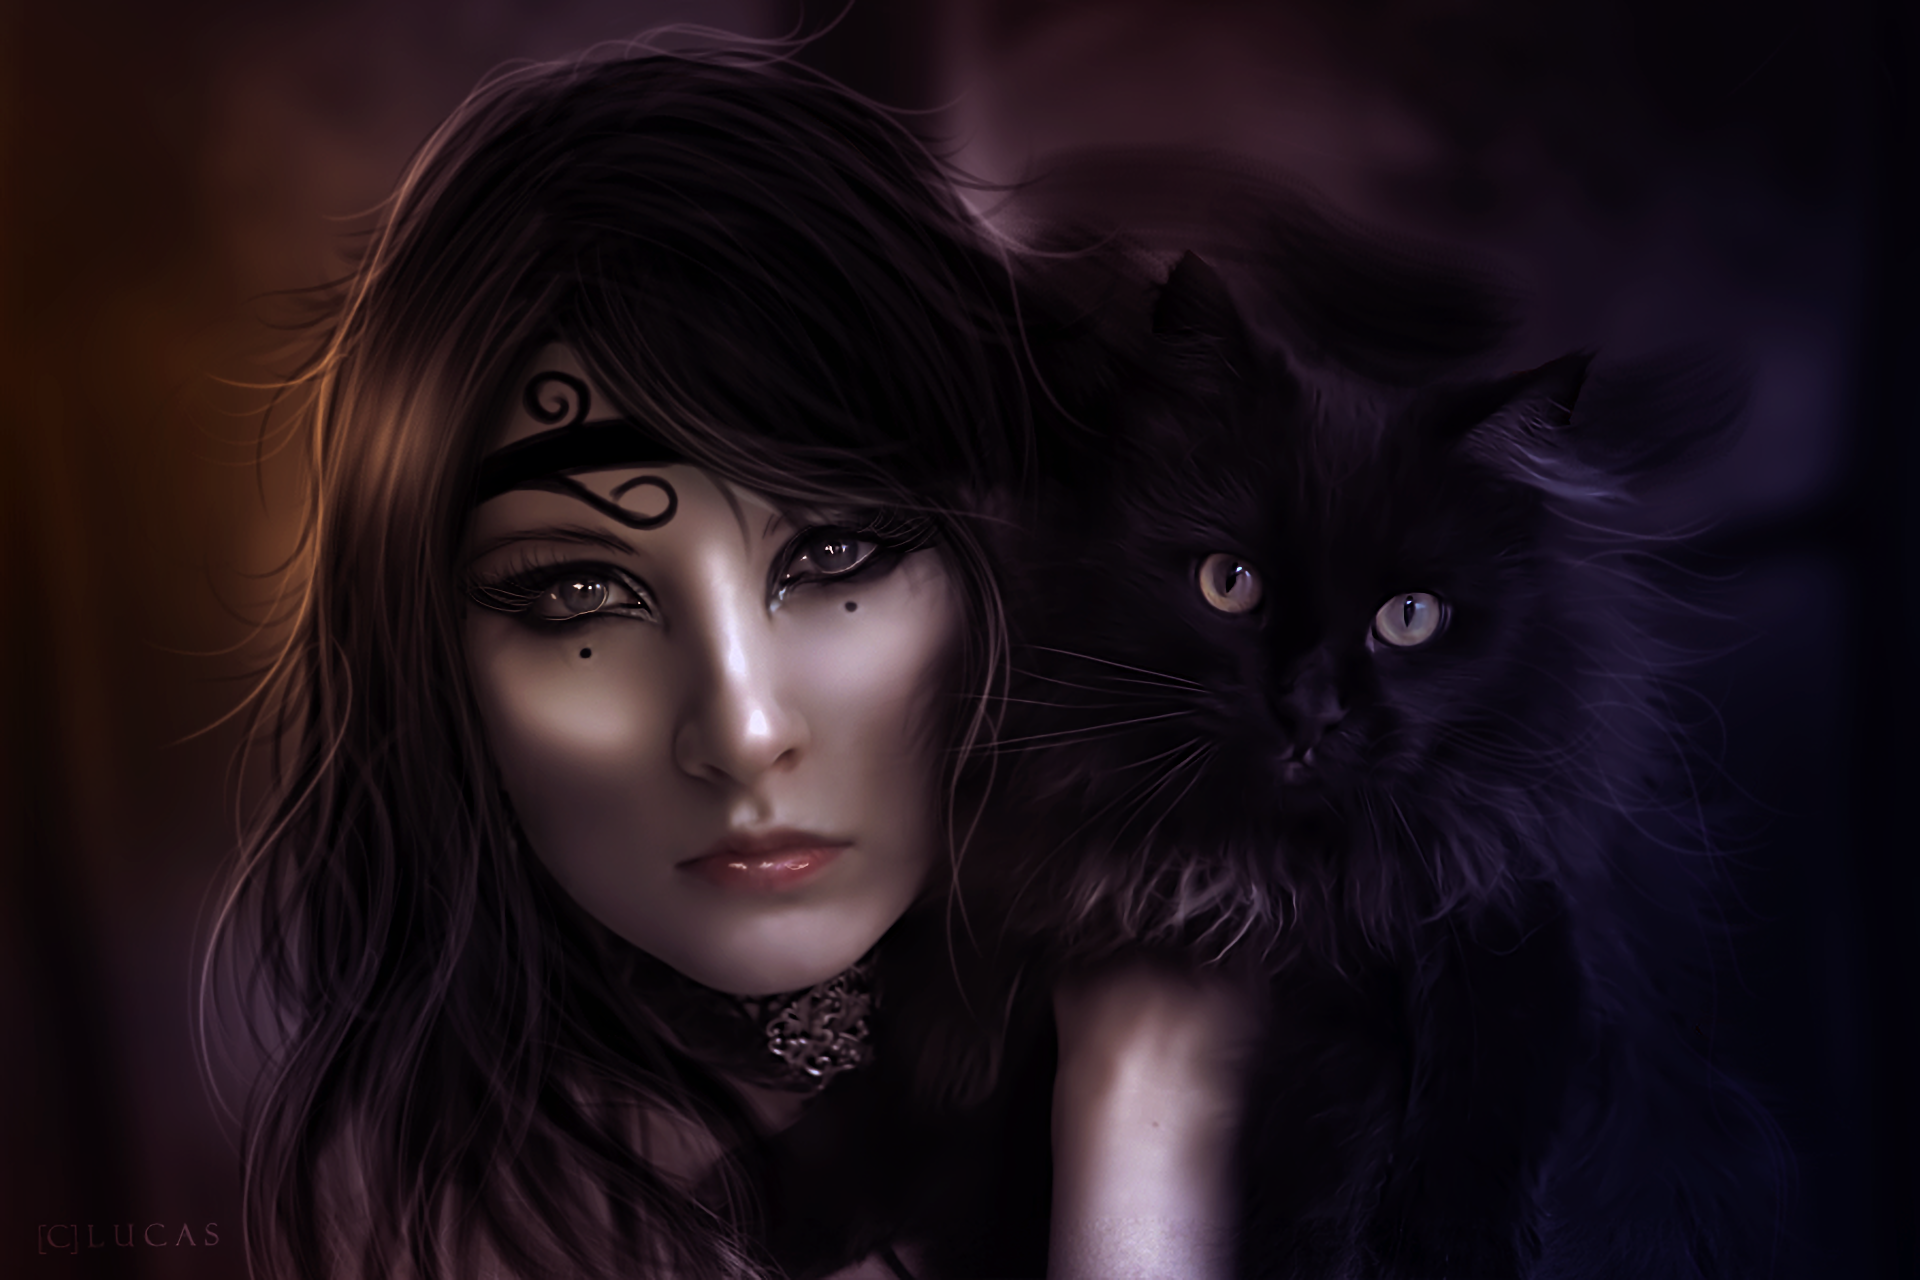 Fantasy Woman With Black Cat Hd Wallpaper Background Image